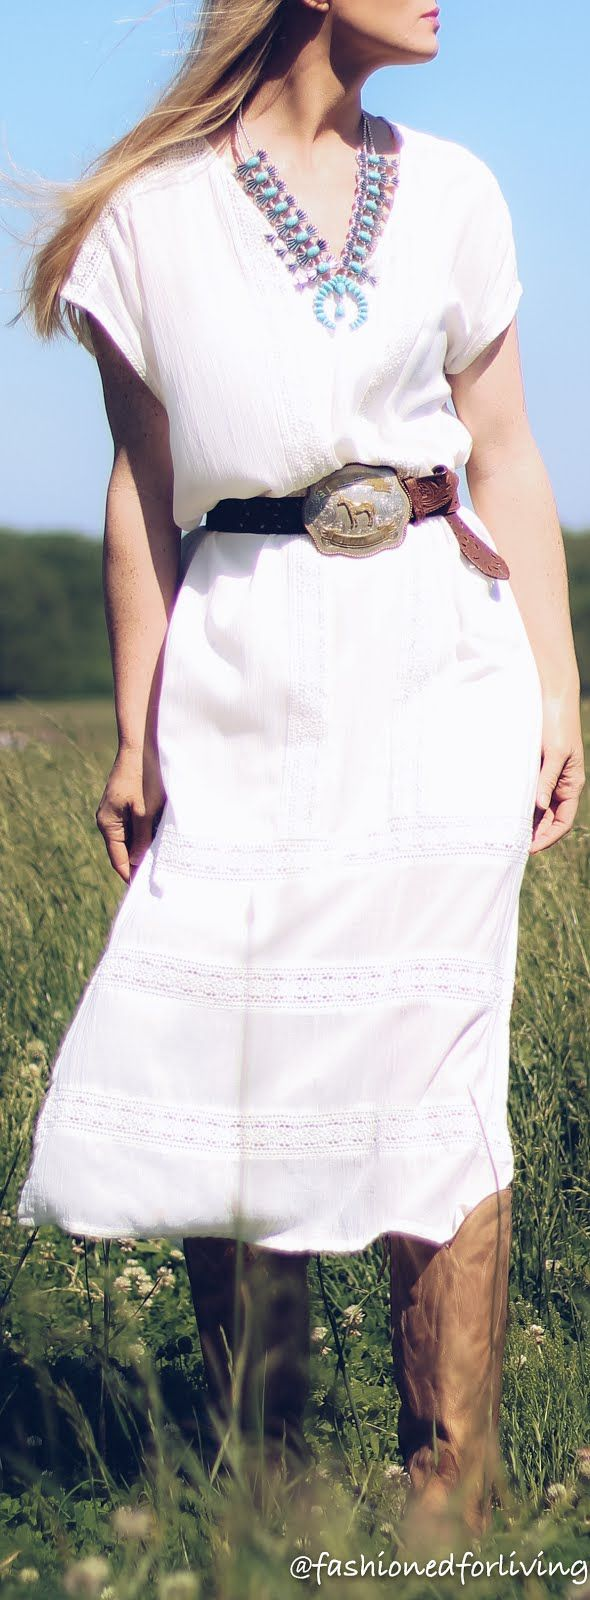 Summer cowboy boots outfit. Women's tony lama boots.